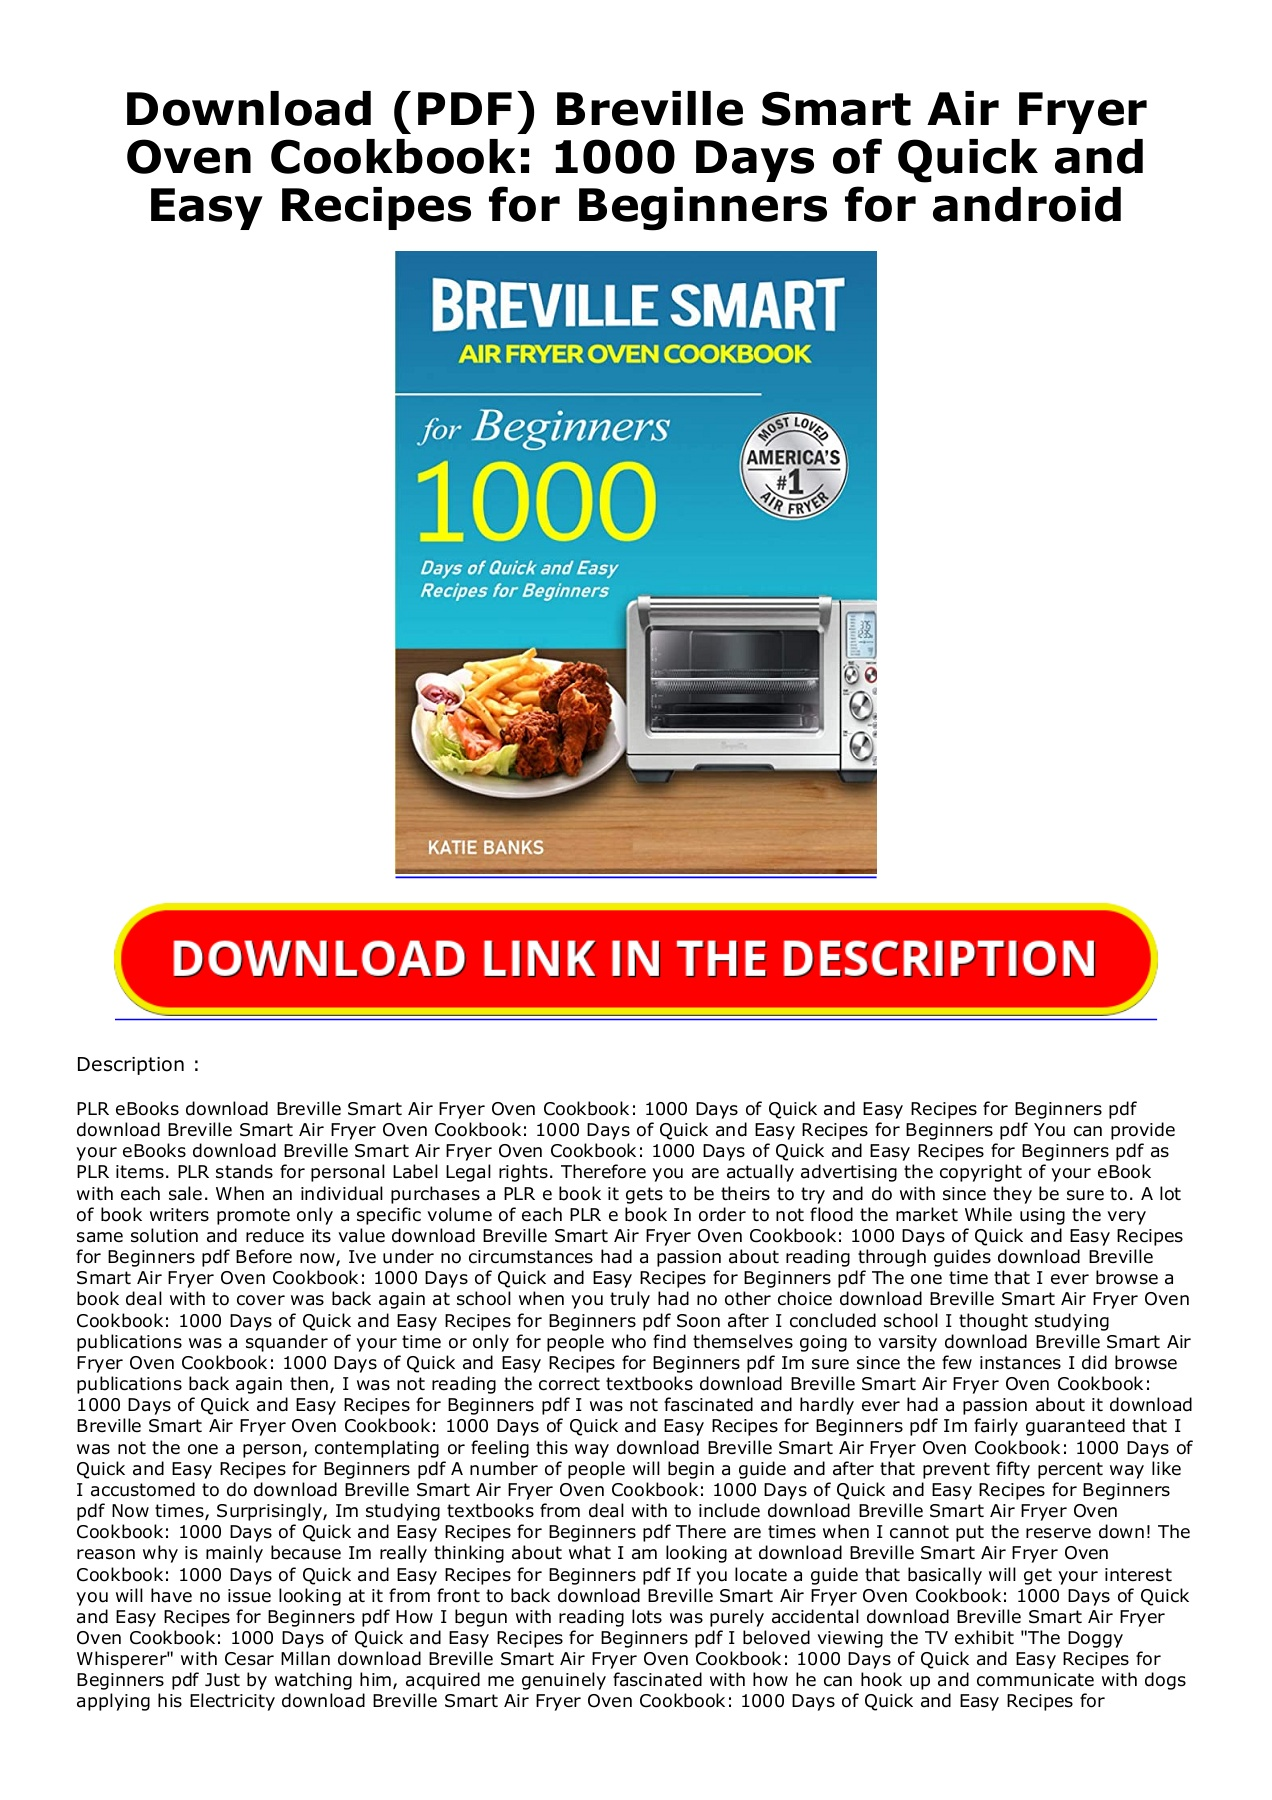 Download Pdf Breville Smart Air Fryer Oven Cookbook 1000 Days Of Quick And Easy Recipes For Beginners For Android